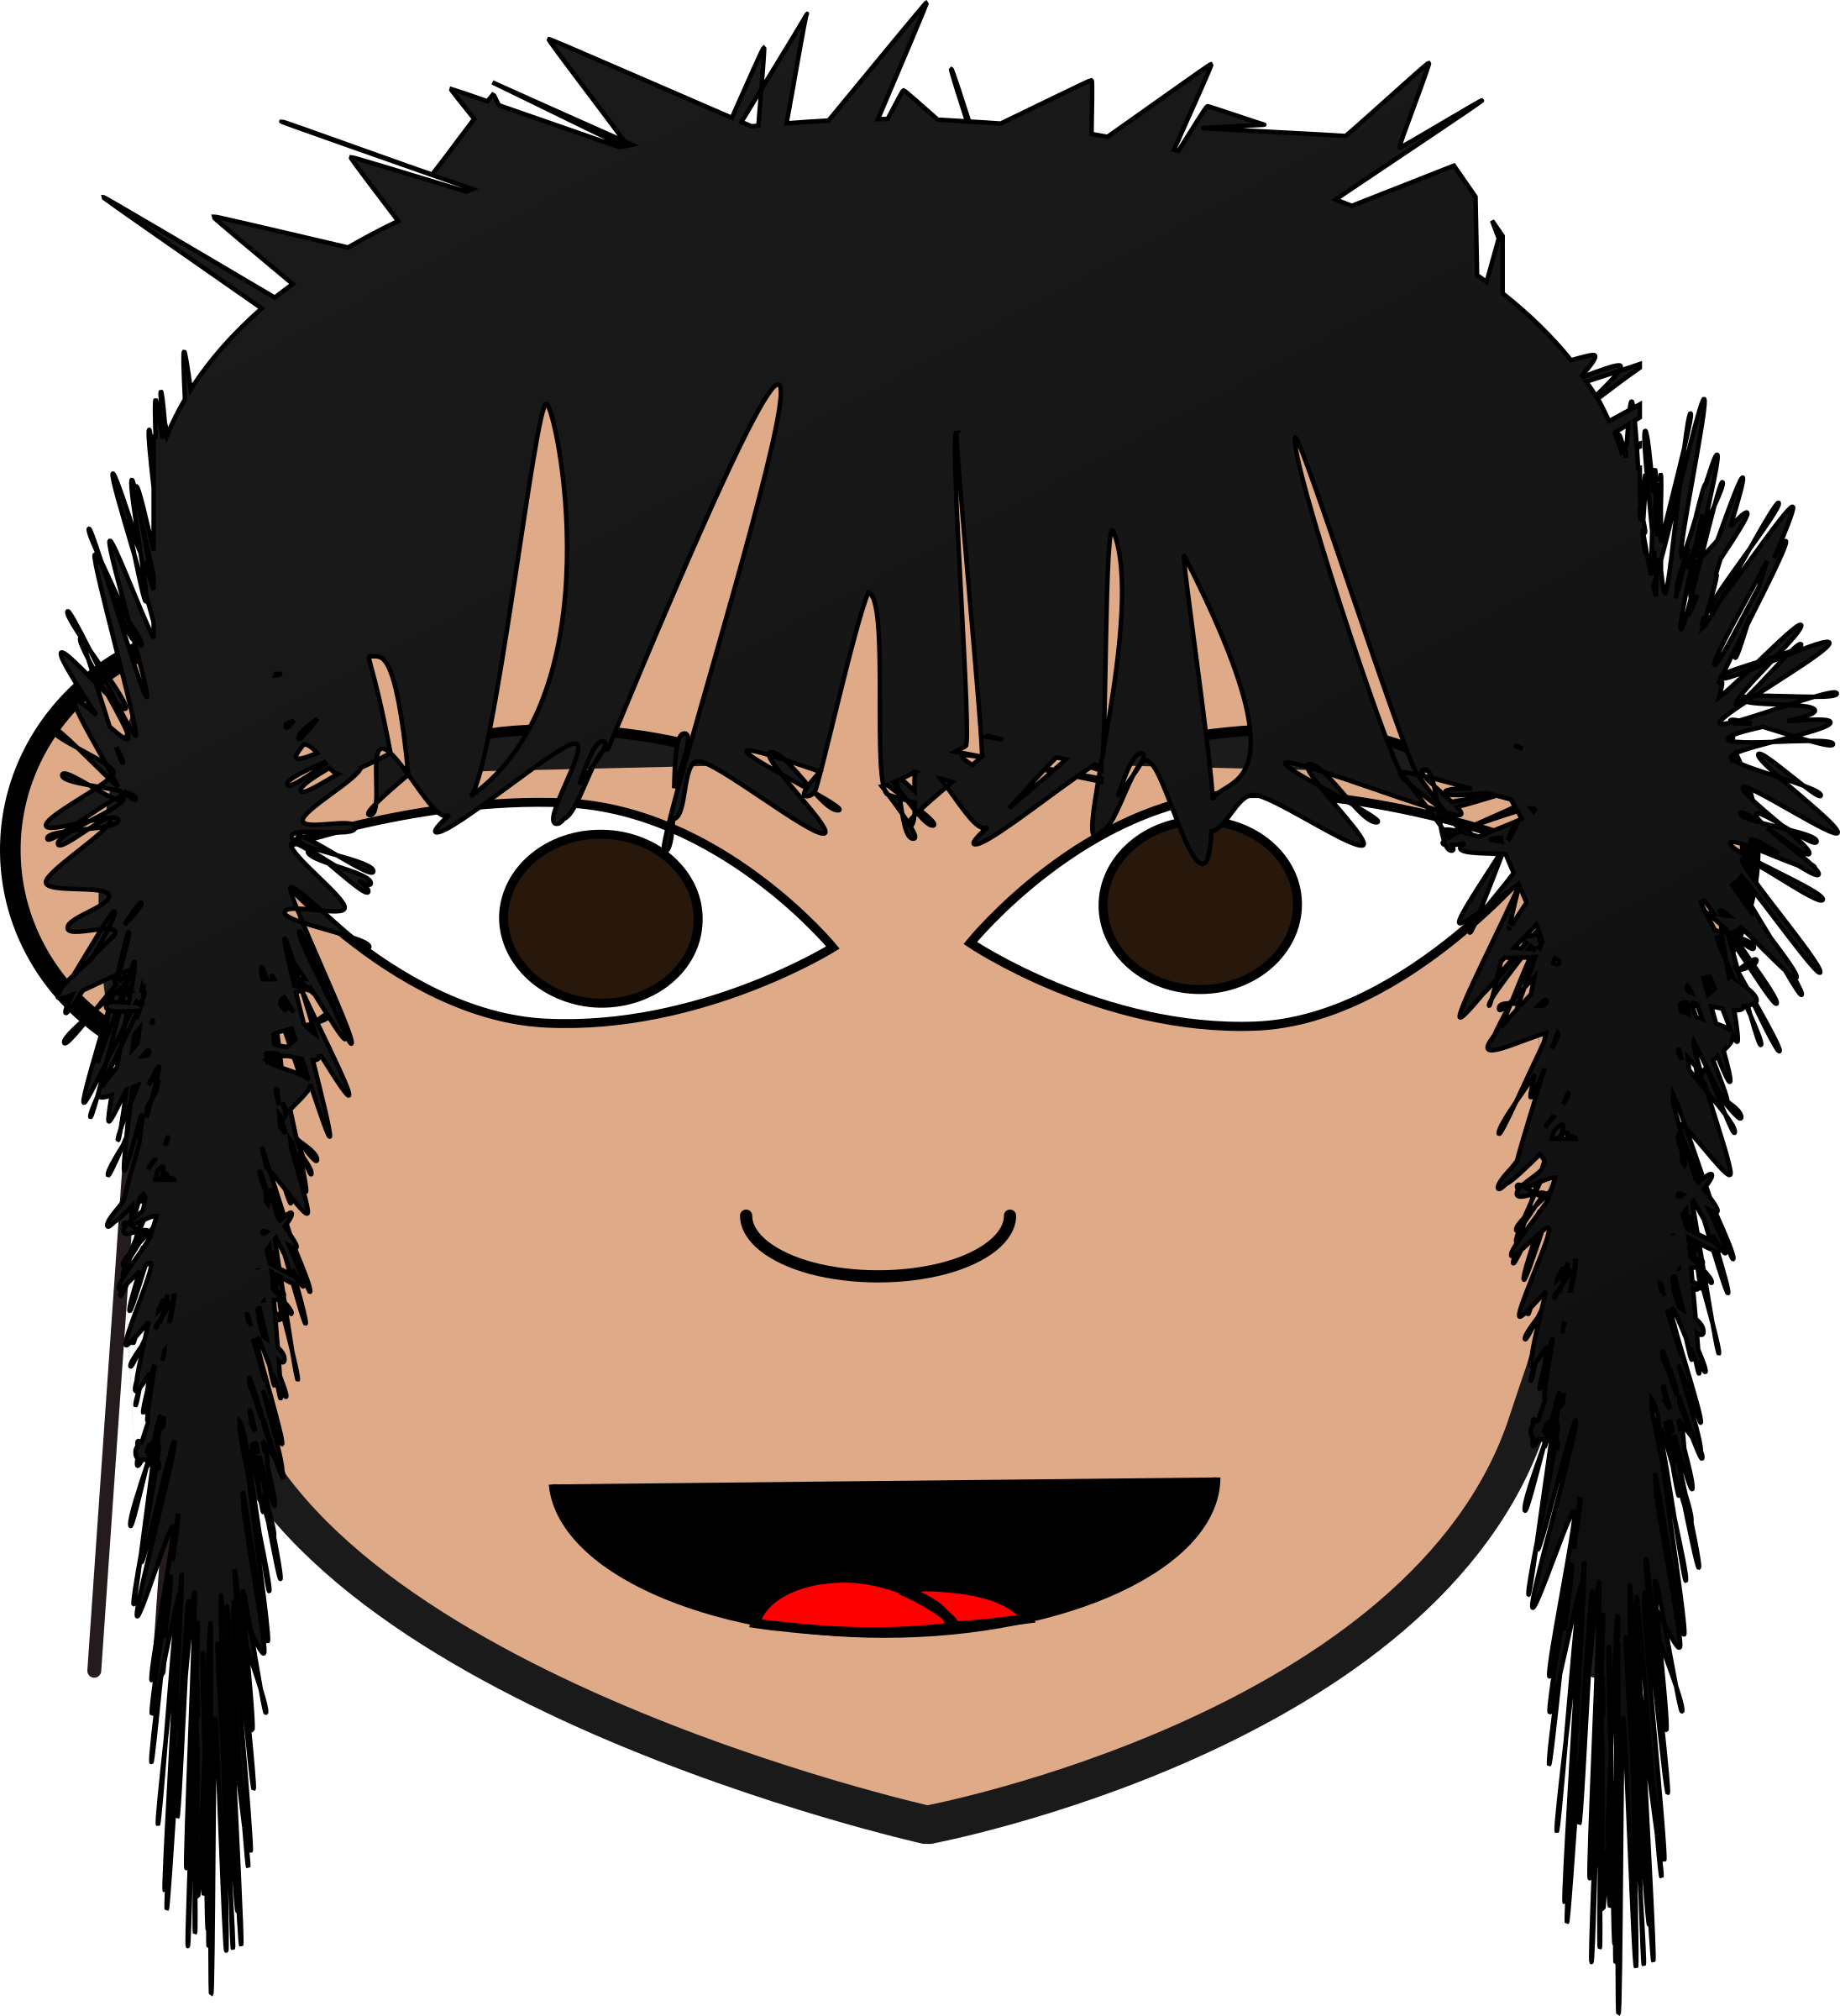 Hair clipart messy, Hair messy Transparent FREE for download.